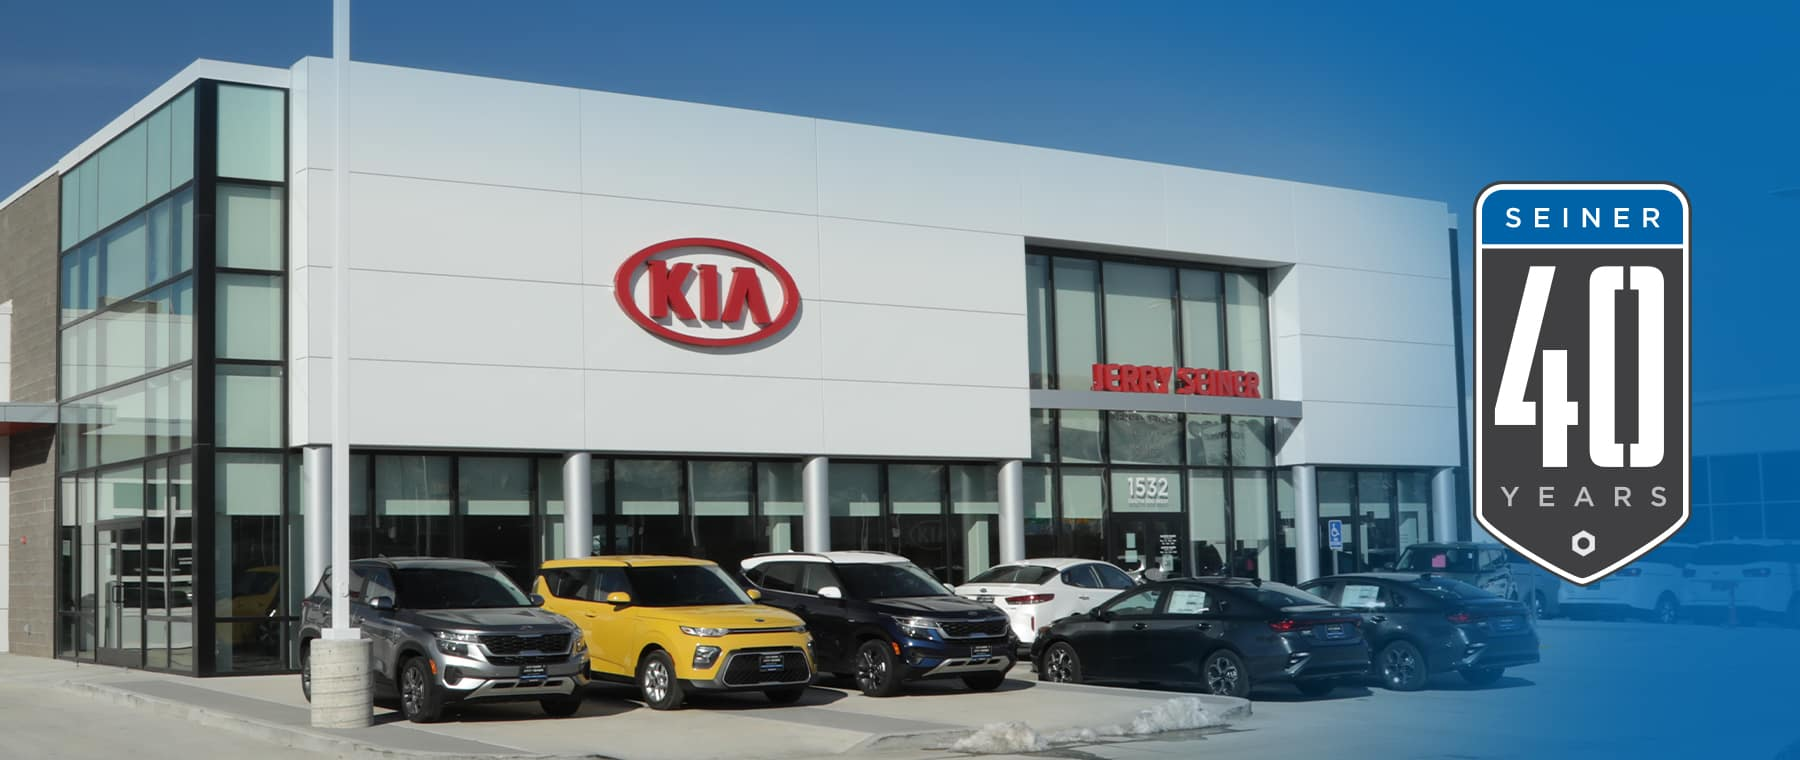 Jerry Seiner Kia Salt Lake Dealership